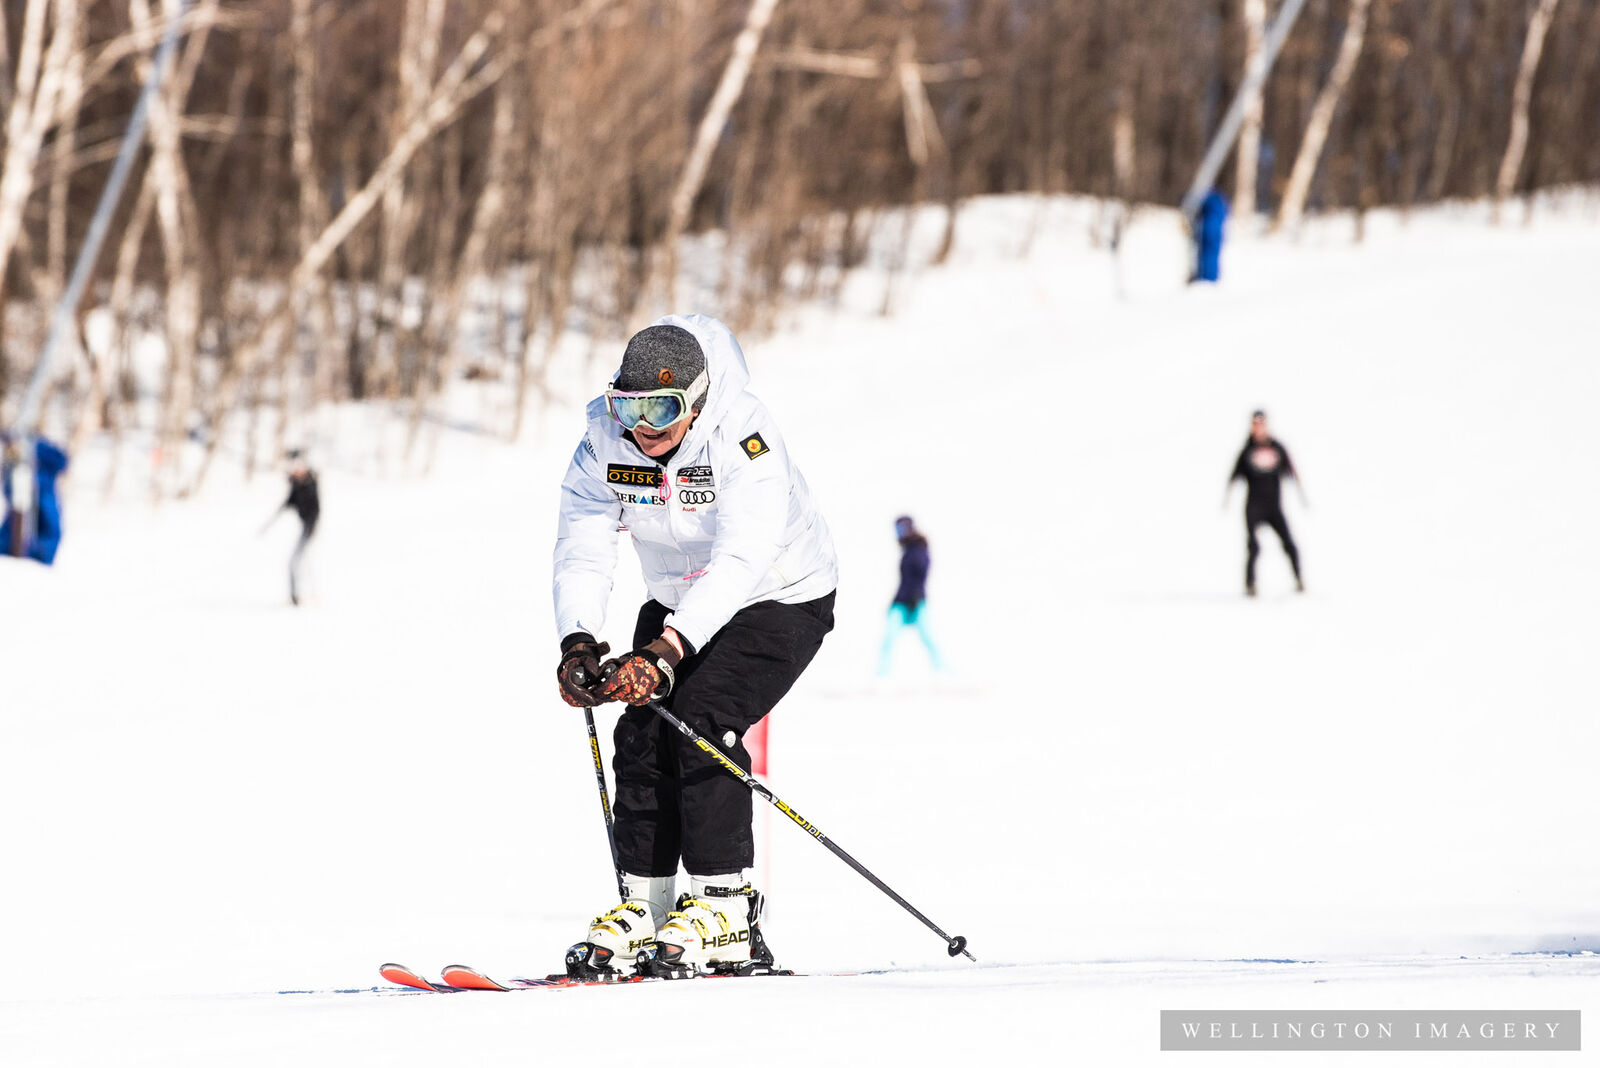 ©WELLINGTONIMAGERY 20190228 142307 BGCO Skiathon 1605 WM 2048px